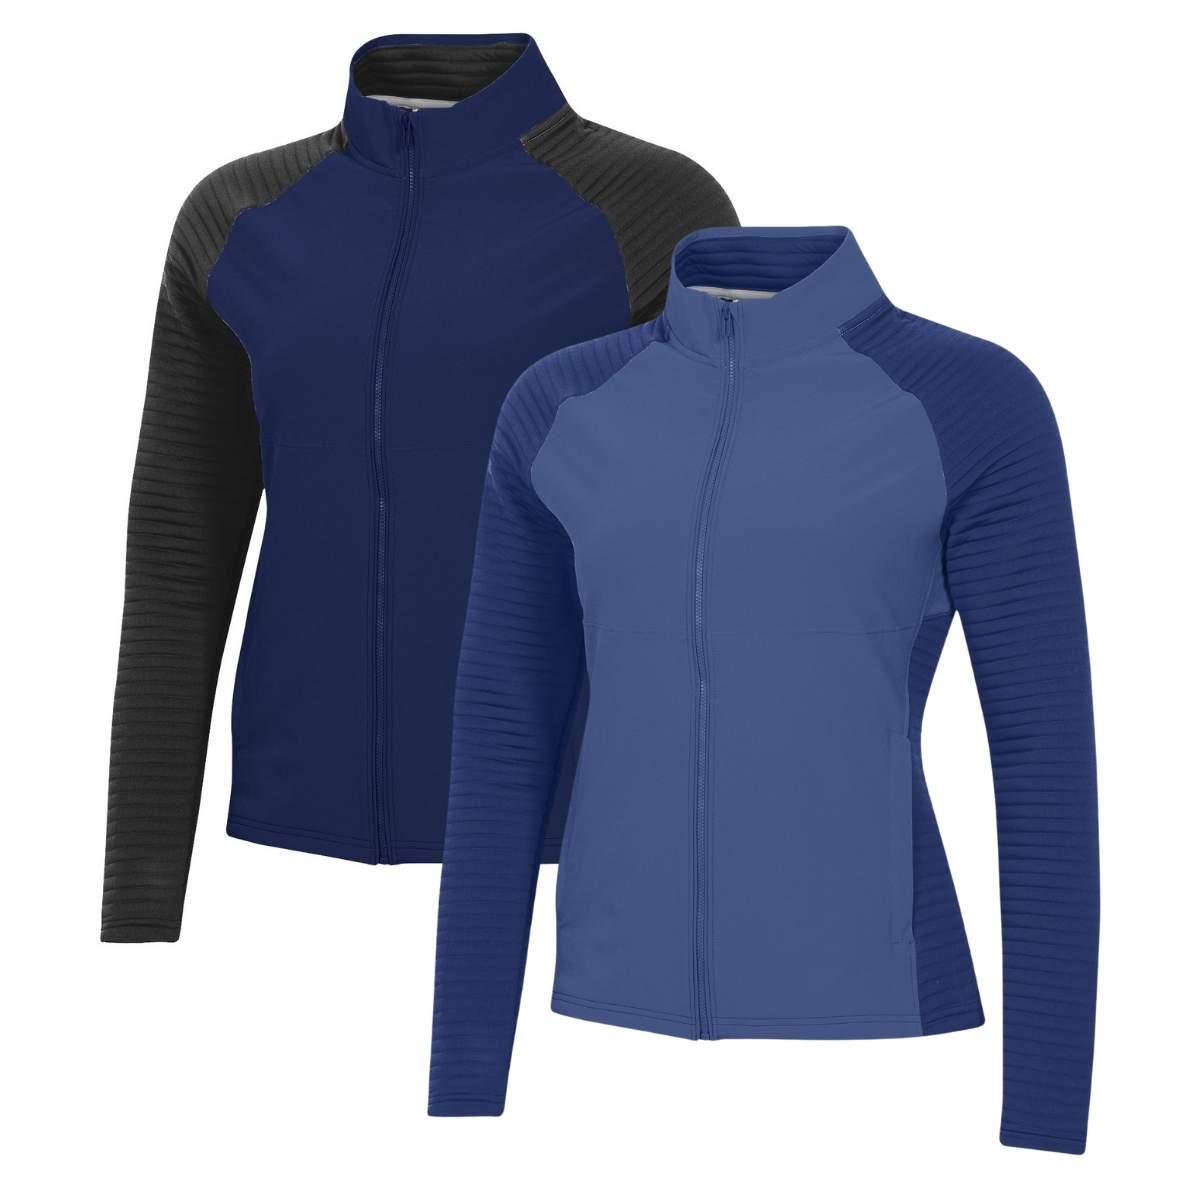 Under Armour Women's 2021 Storm Evolution Full Zip Jacket